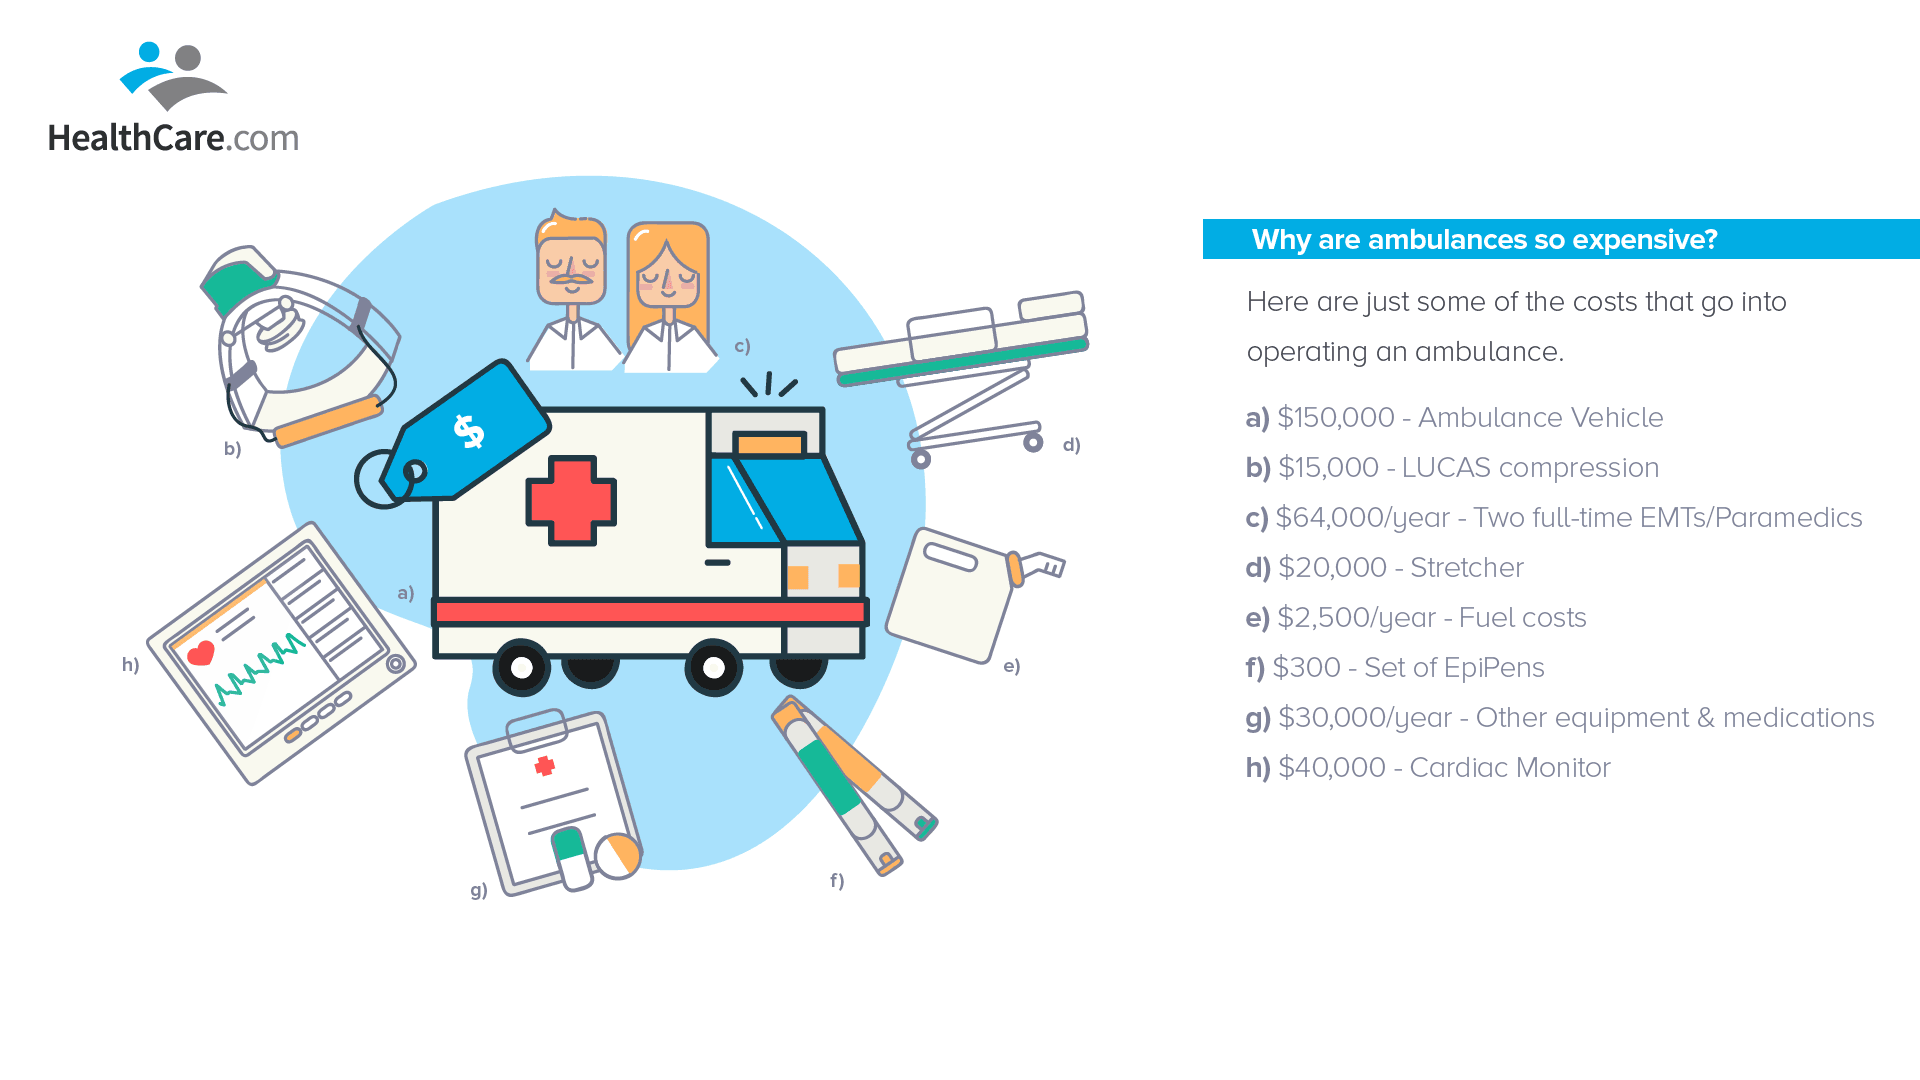 Why Ambulances Are So Expensive Illustration | The CheckUp by HealthCare.com